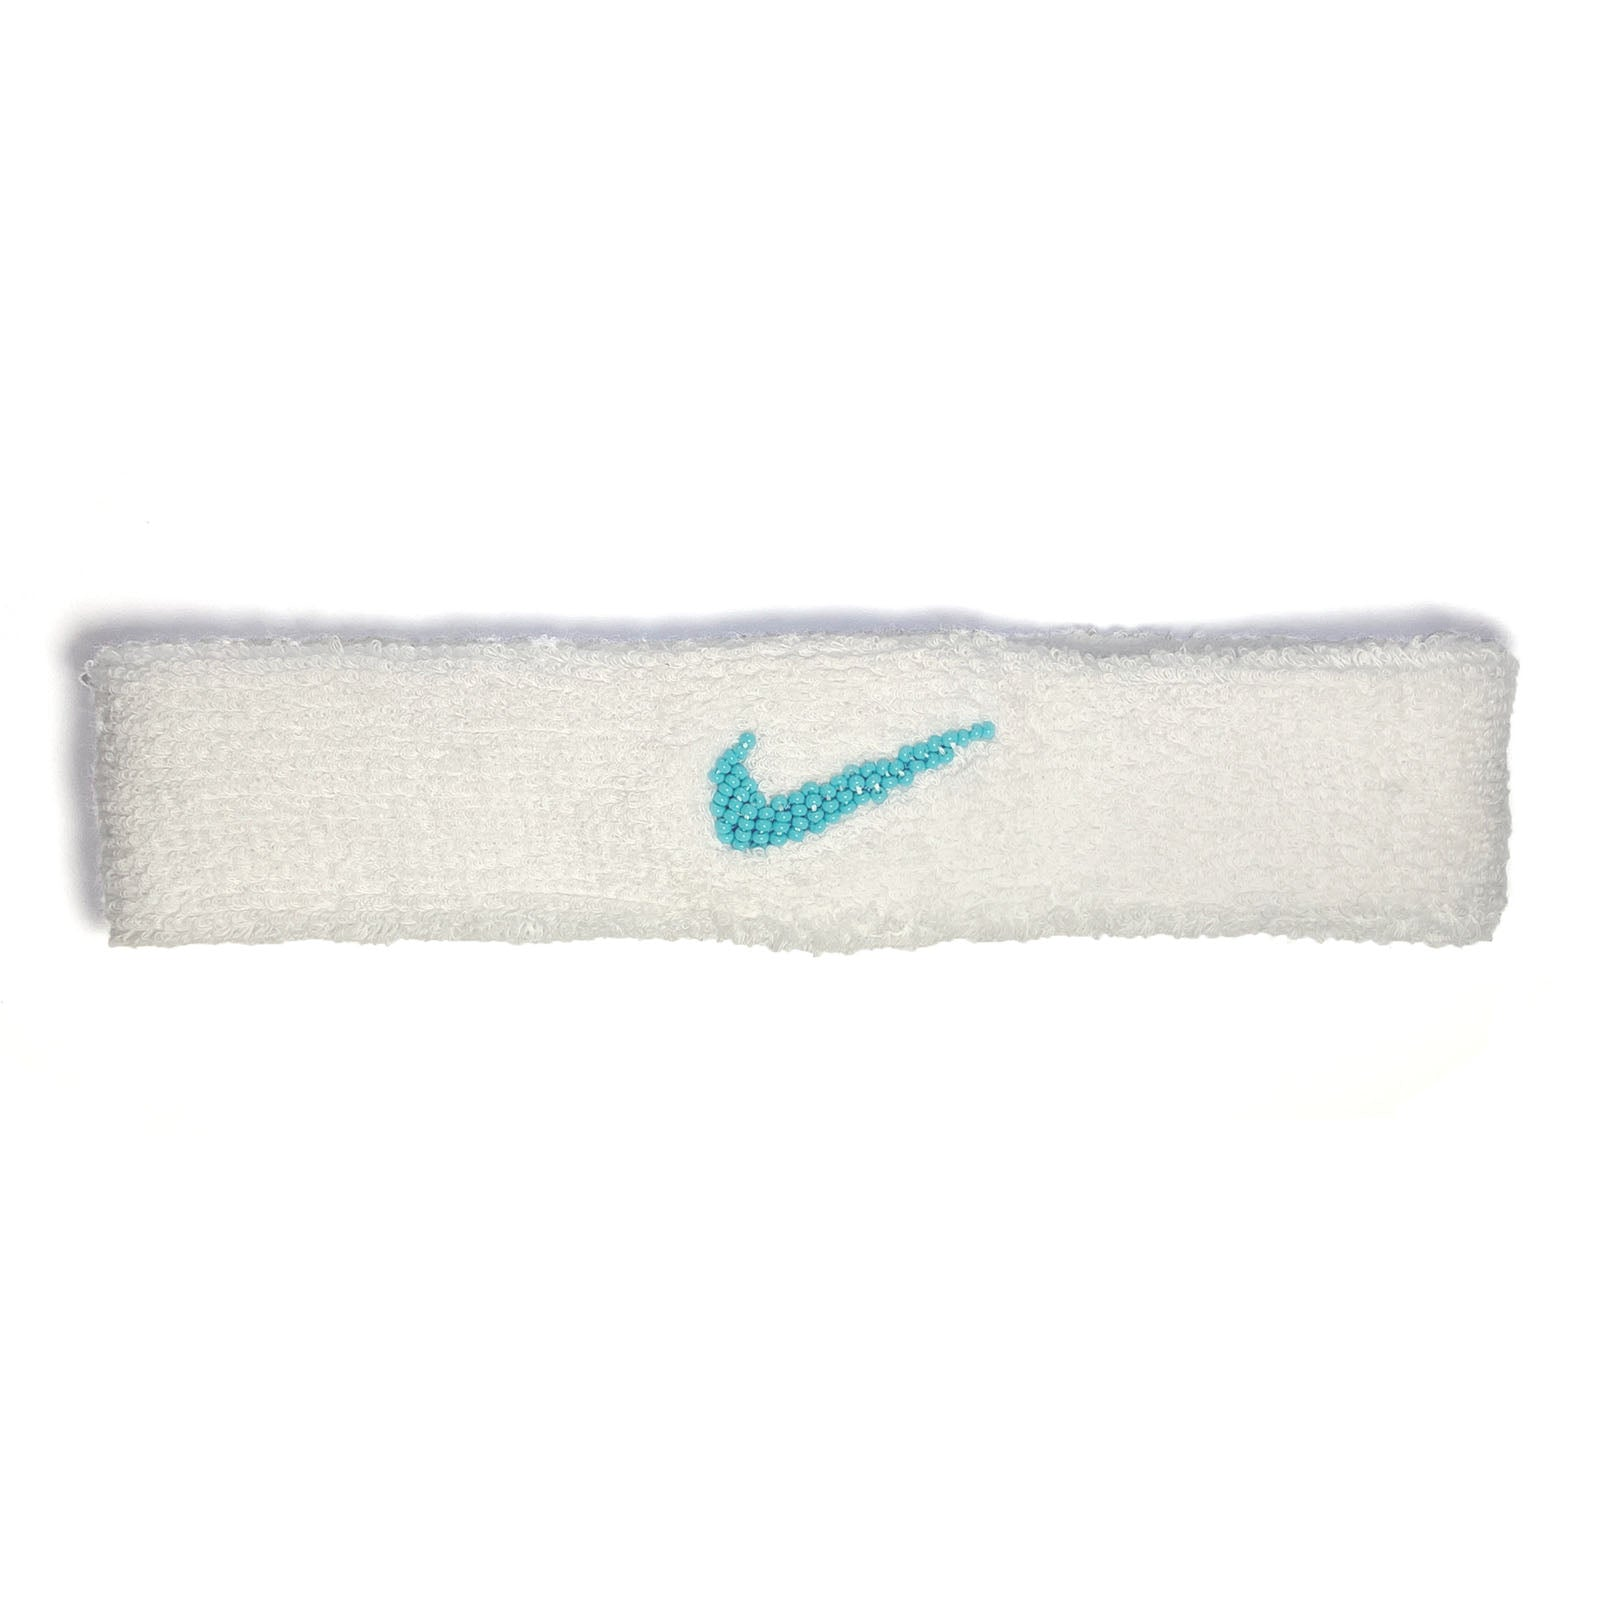 "BANDULU "" CAROLINA "" BEADED NIKE HEADBAND"